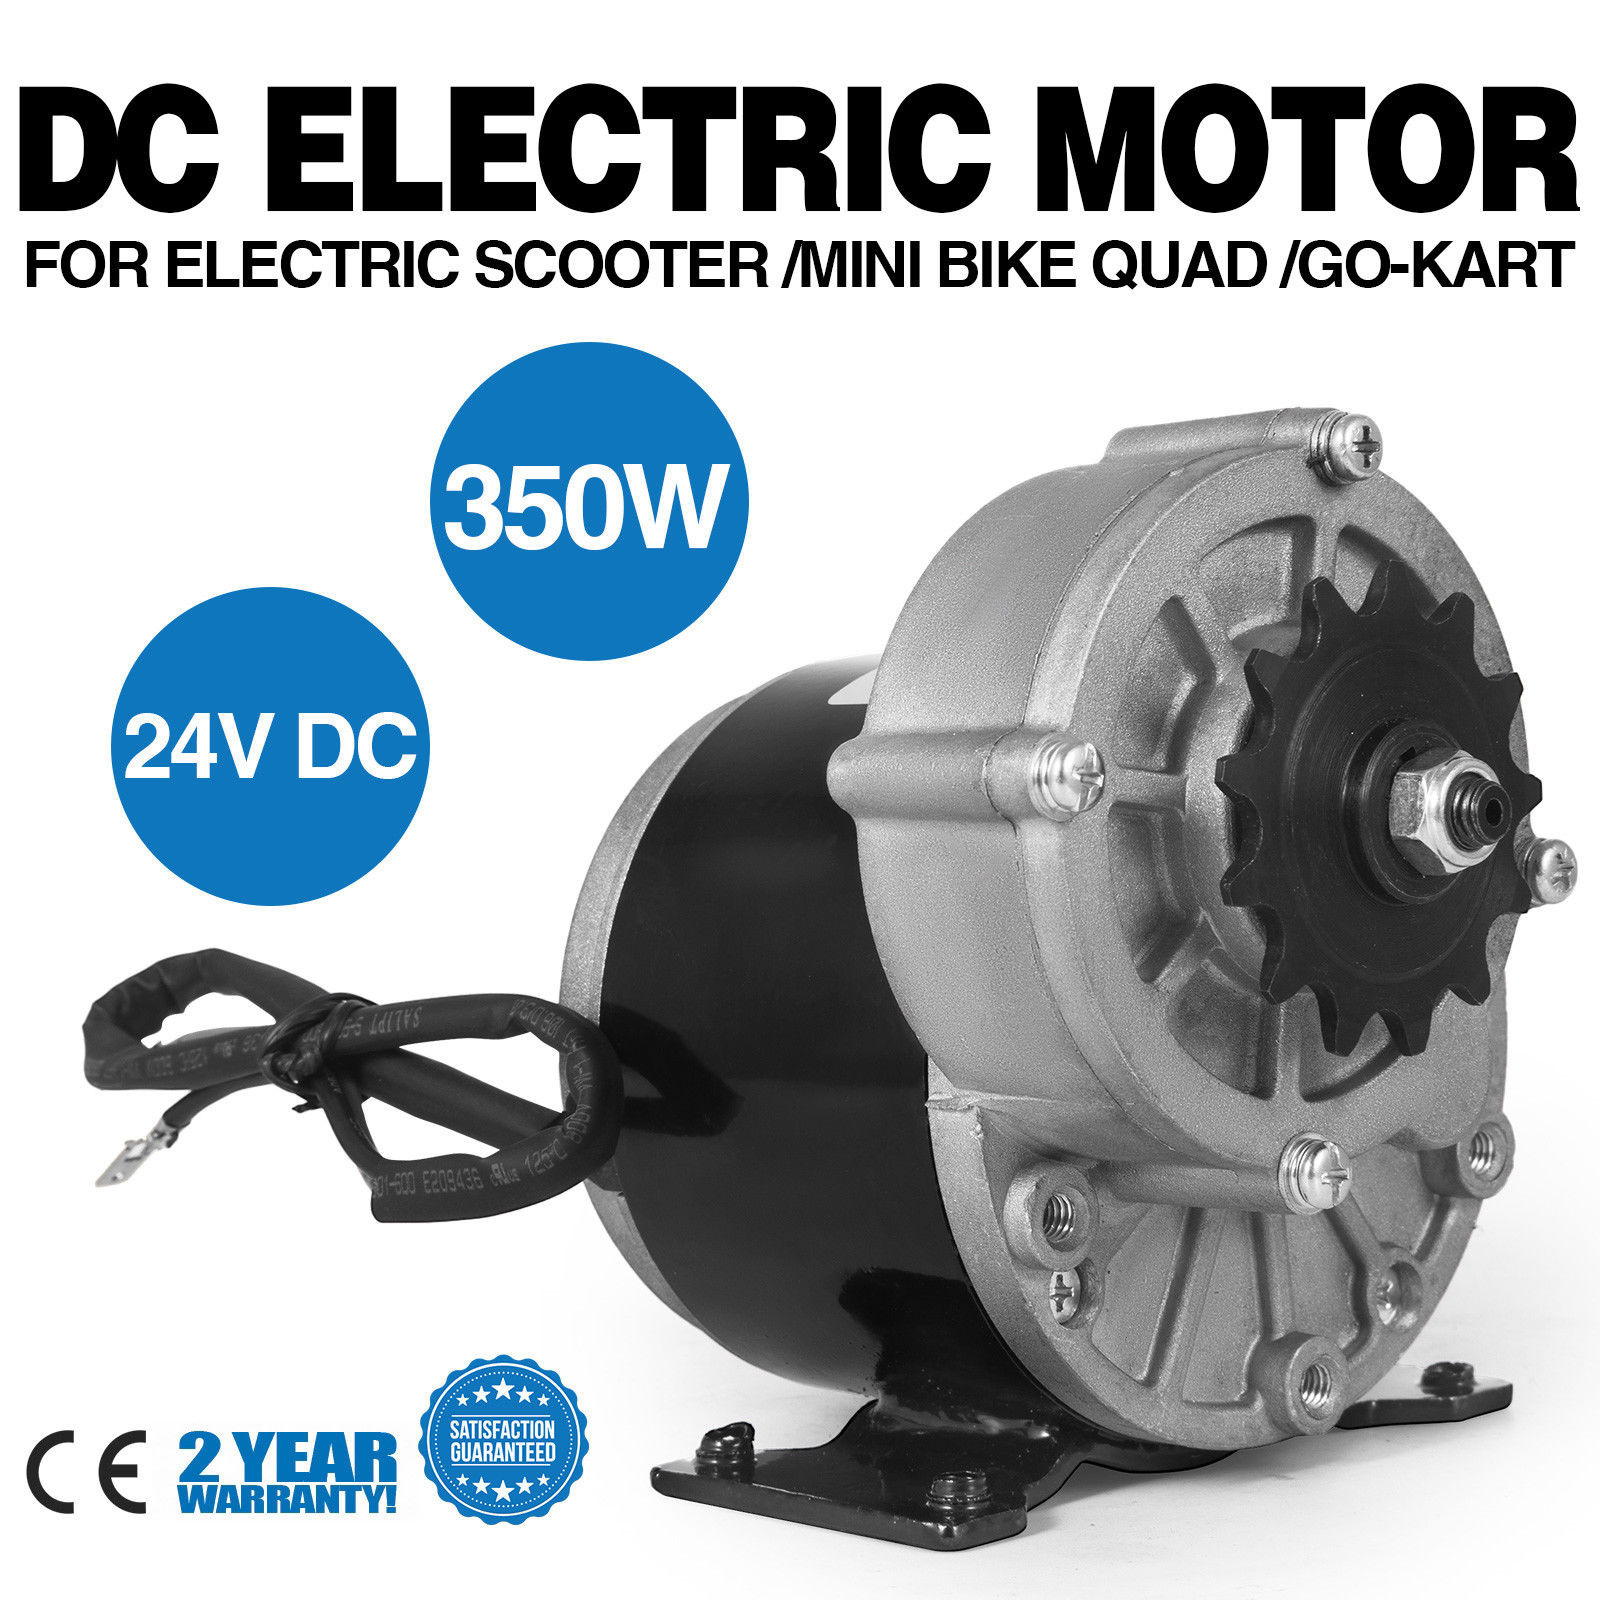 350W DC Electric Motor 24V 3000RPM Gear ratio 9.7:1 Permanent Bicycle E-Scooter